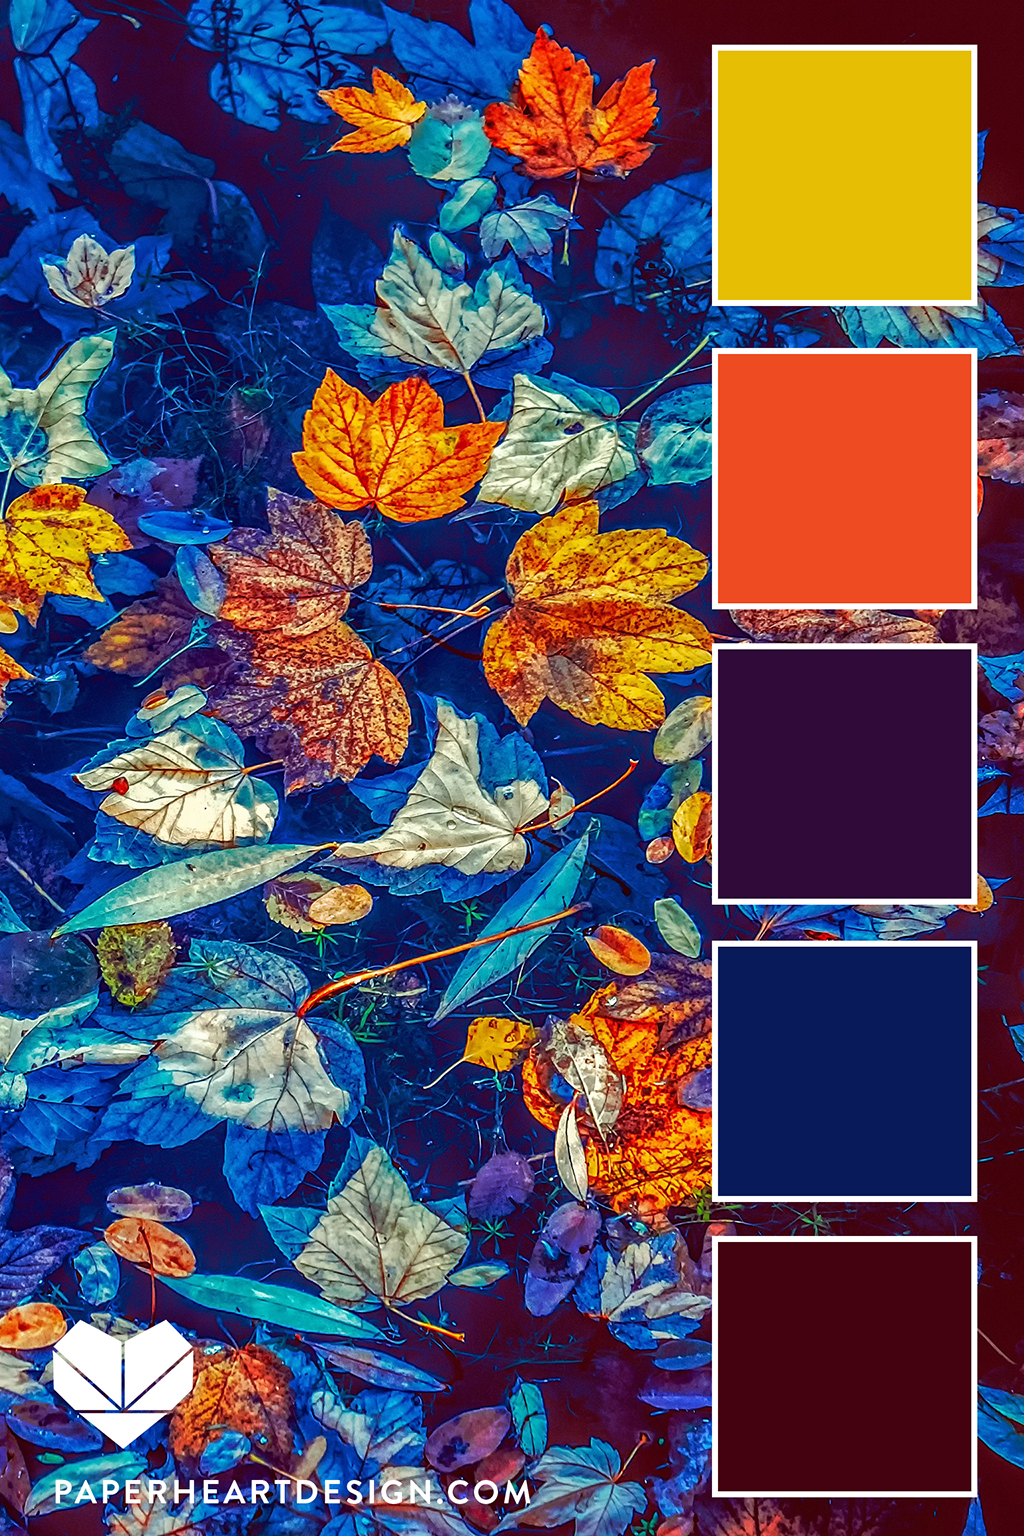 Jewel tones in fall mixed with warm oranges and yellows are a beautiful combination. There are so many gorgeous hues this tie of year.